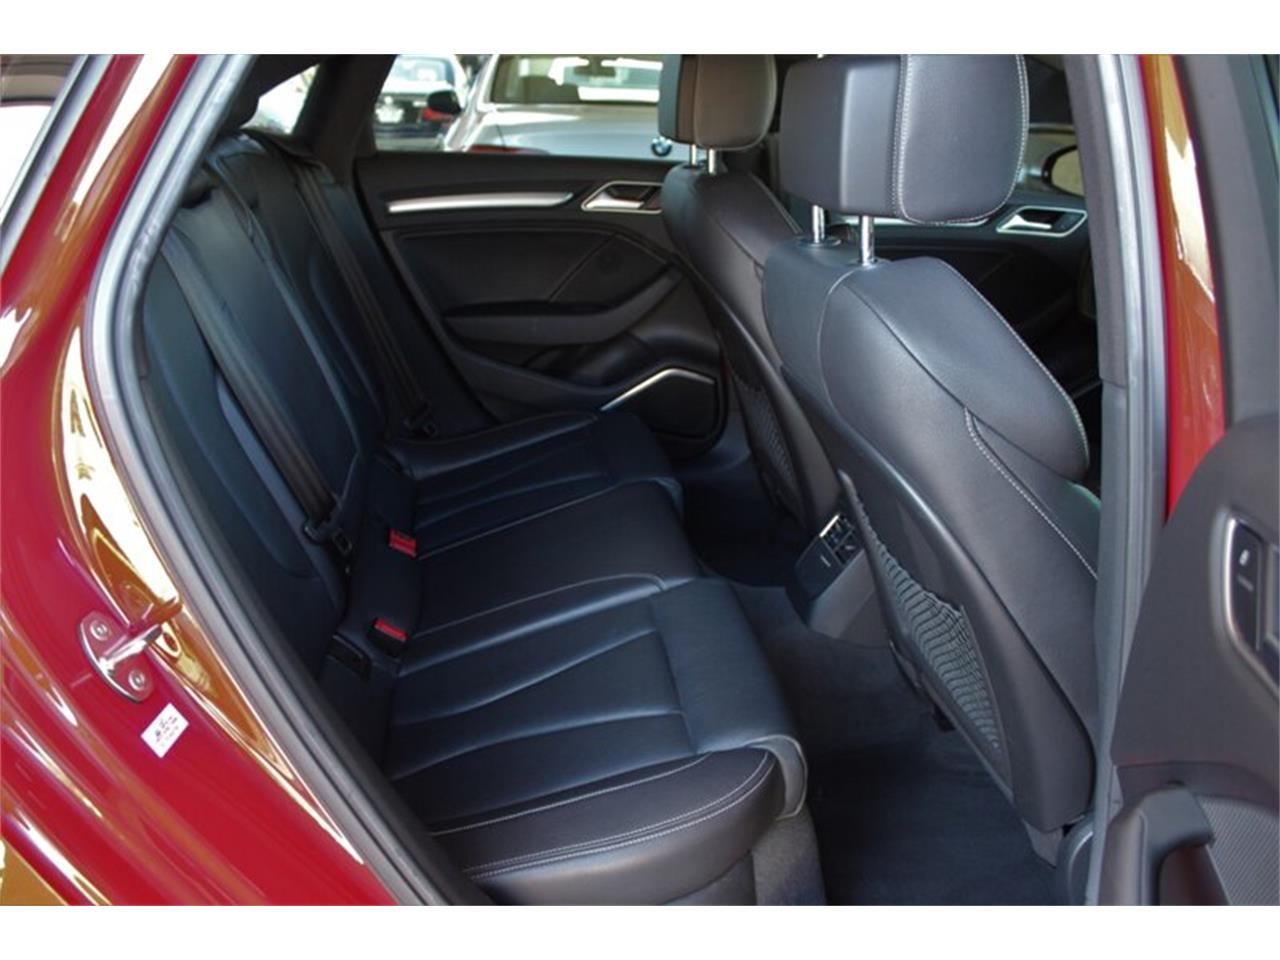 Large Picture of '15 Audi S3 - $26,995.00 Offered by Monza Car - Q3OQ